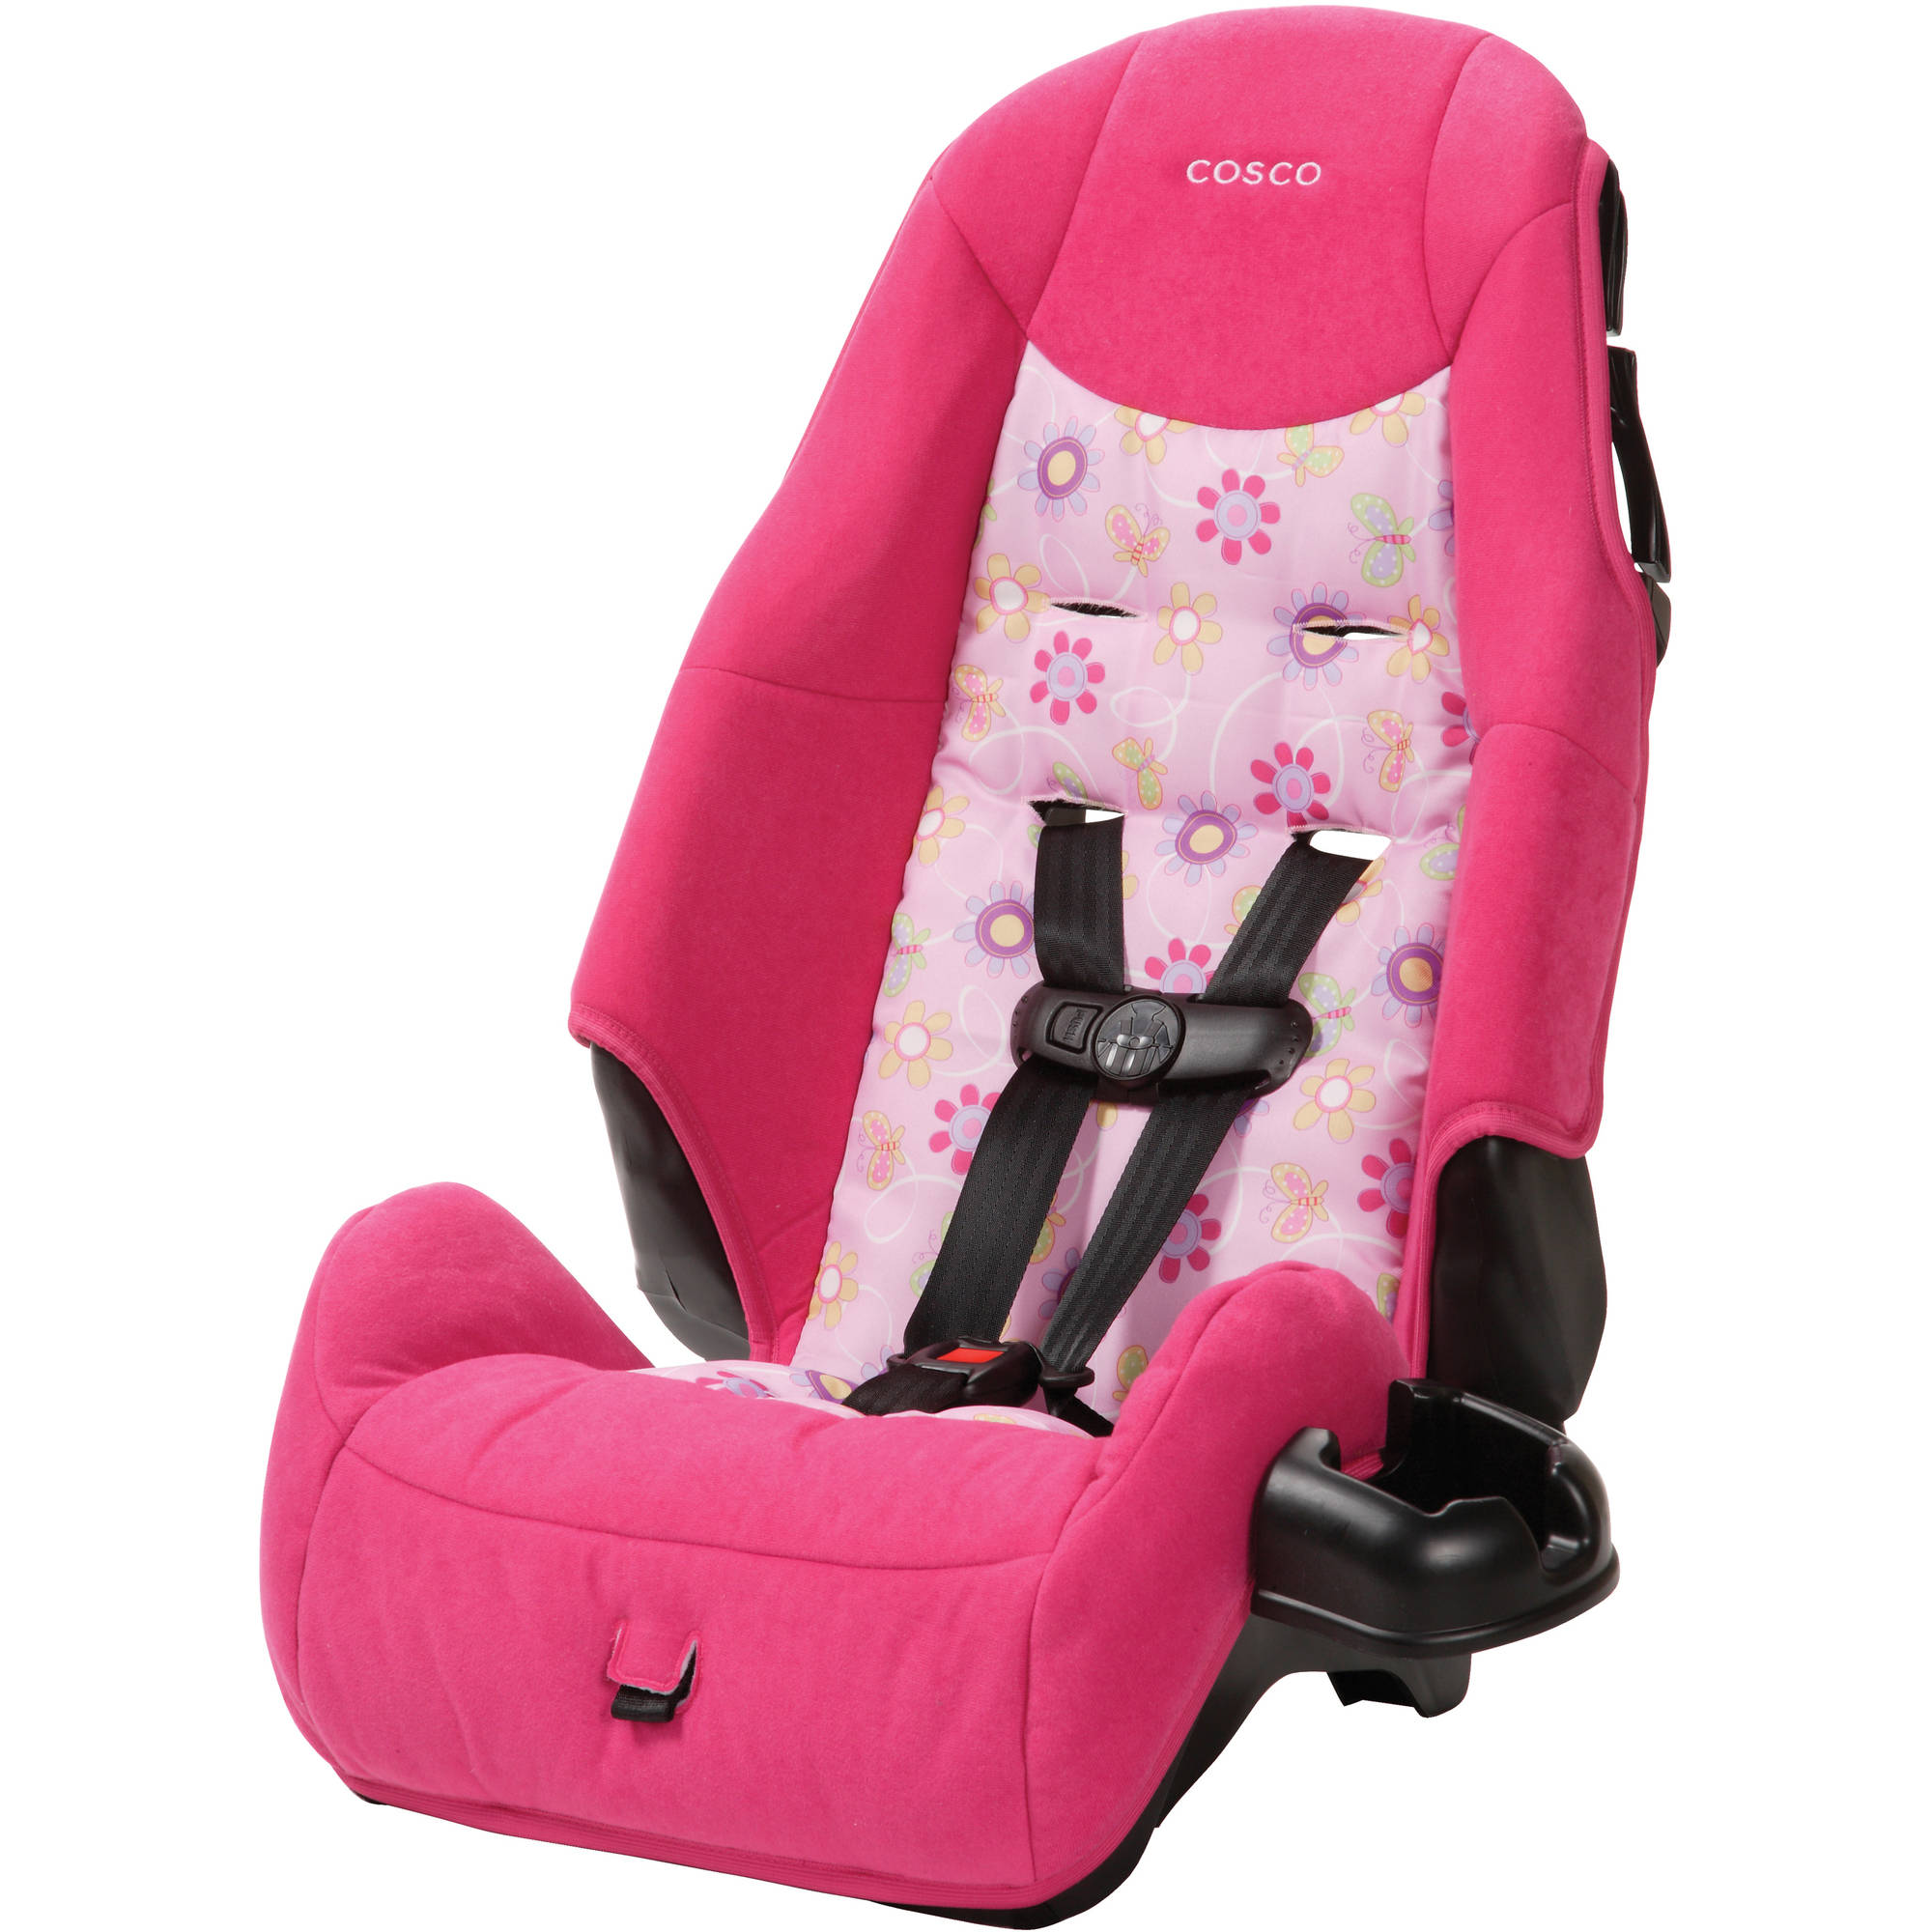 Generic Cosco High - back Booster Car Seat, Polyanna